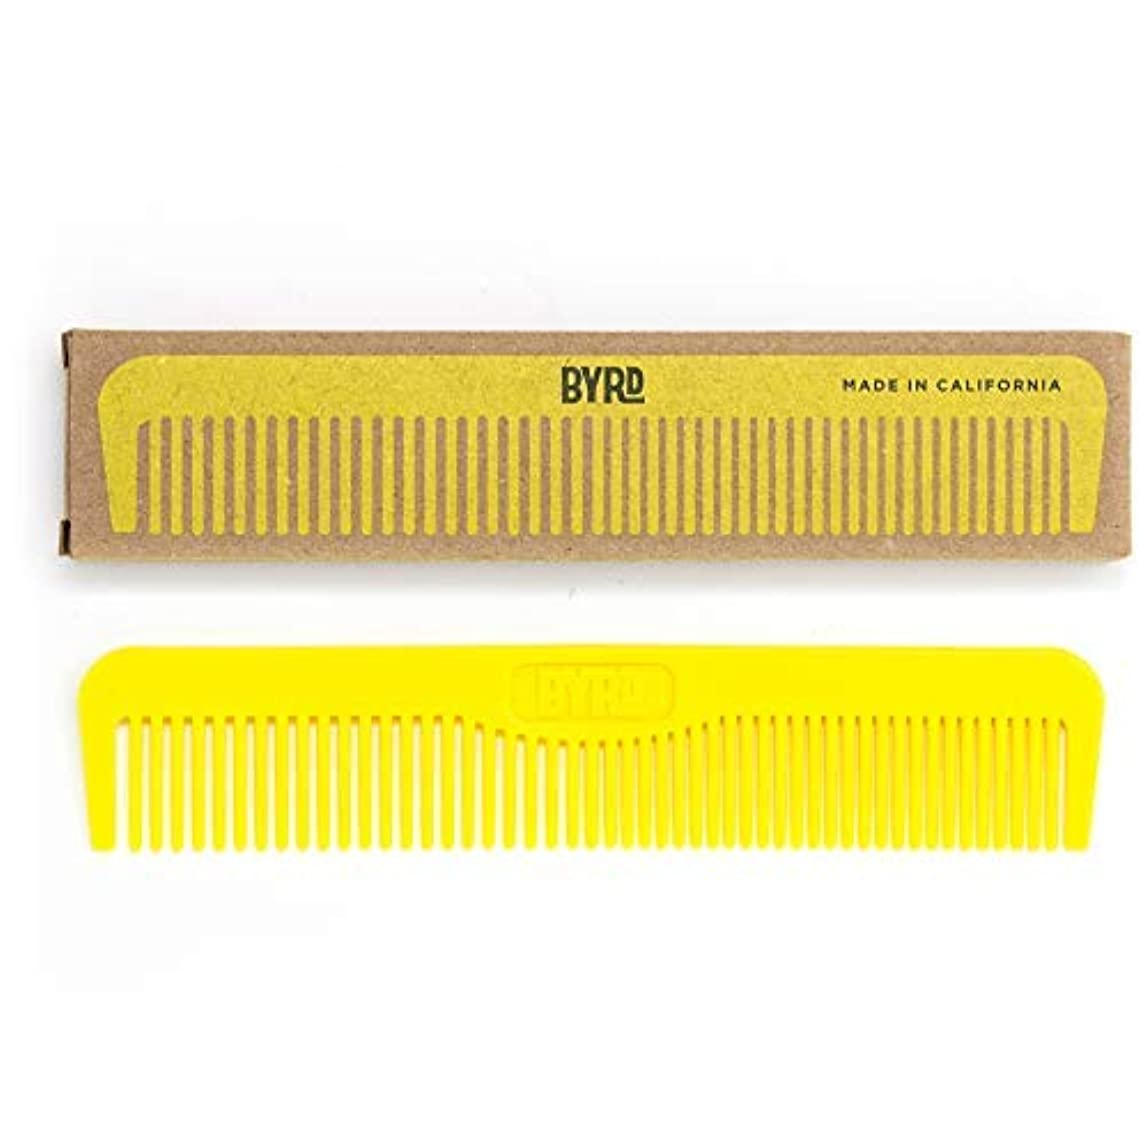 BYRD Pocket Comb - Durable, Flexible, Tangle Free, Styling Comb, For All Hair Types, Back Pocket Friendly [並行輸入品]